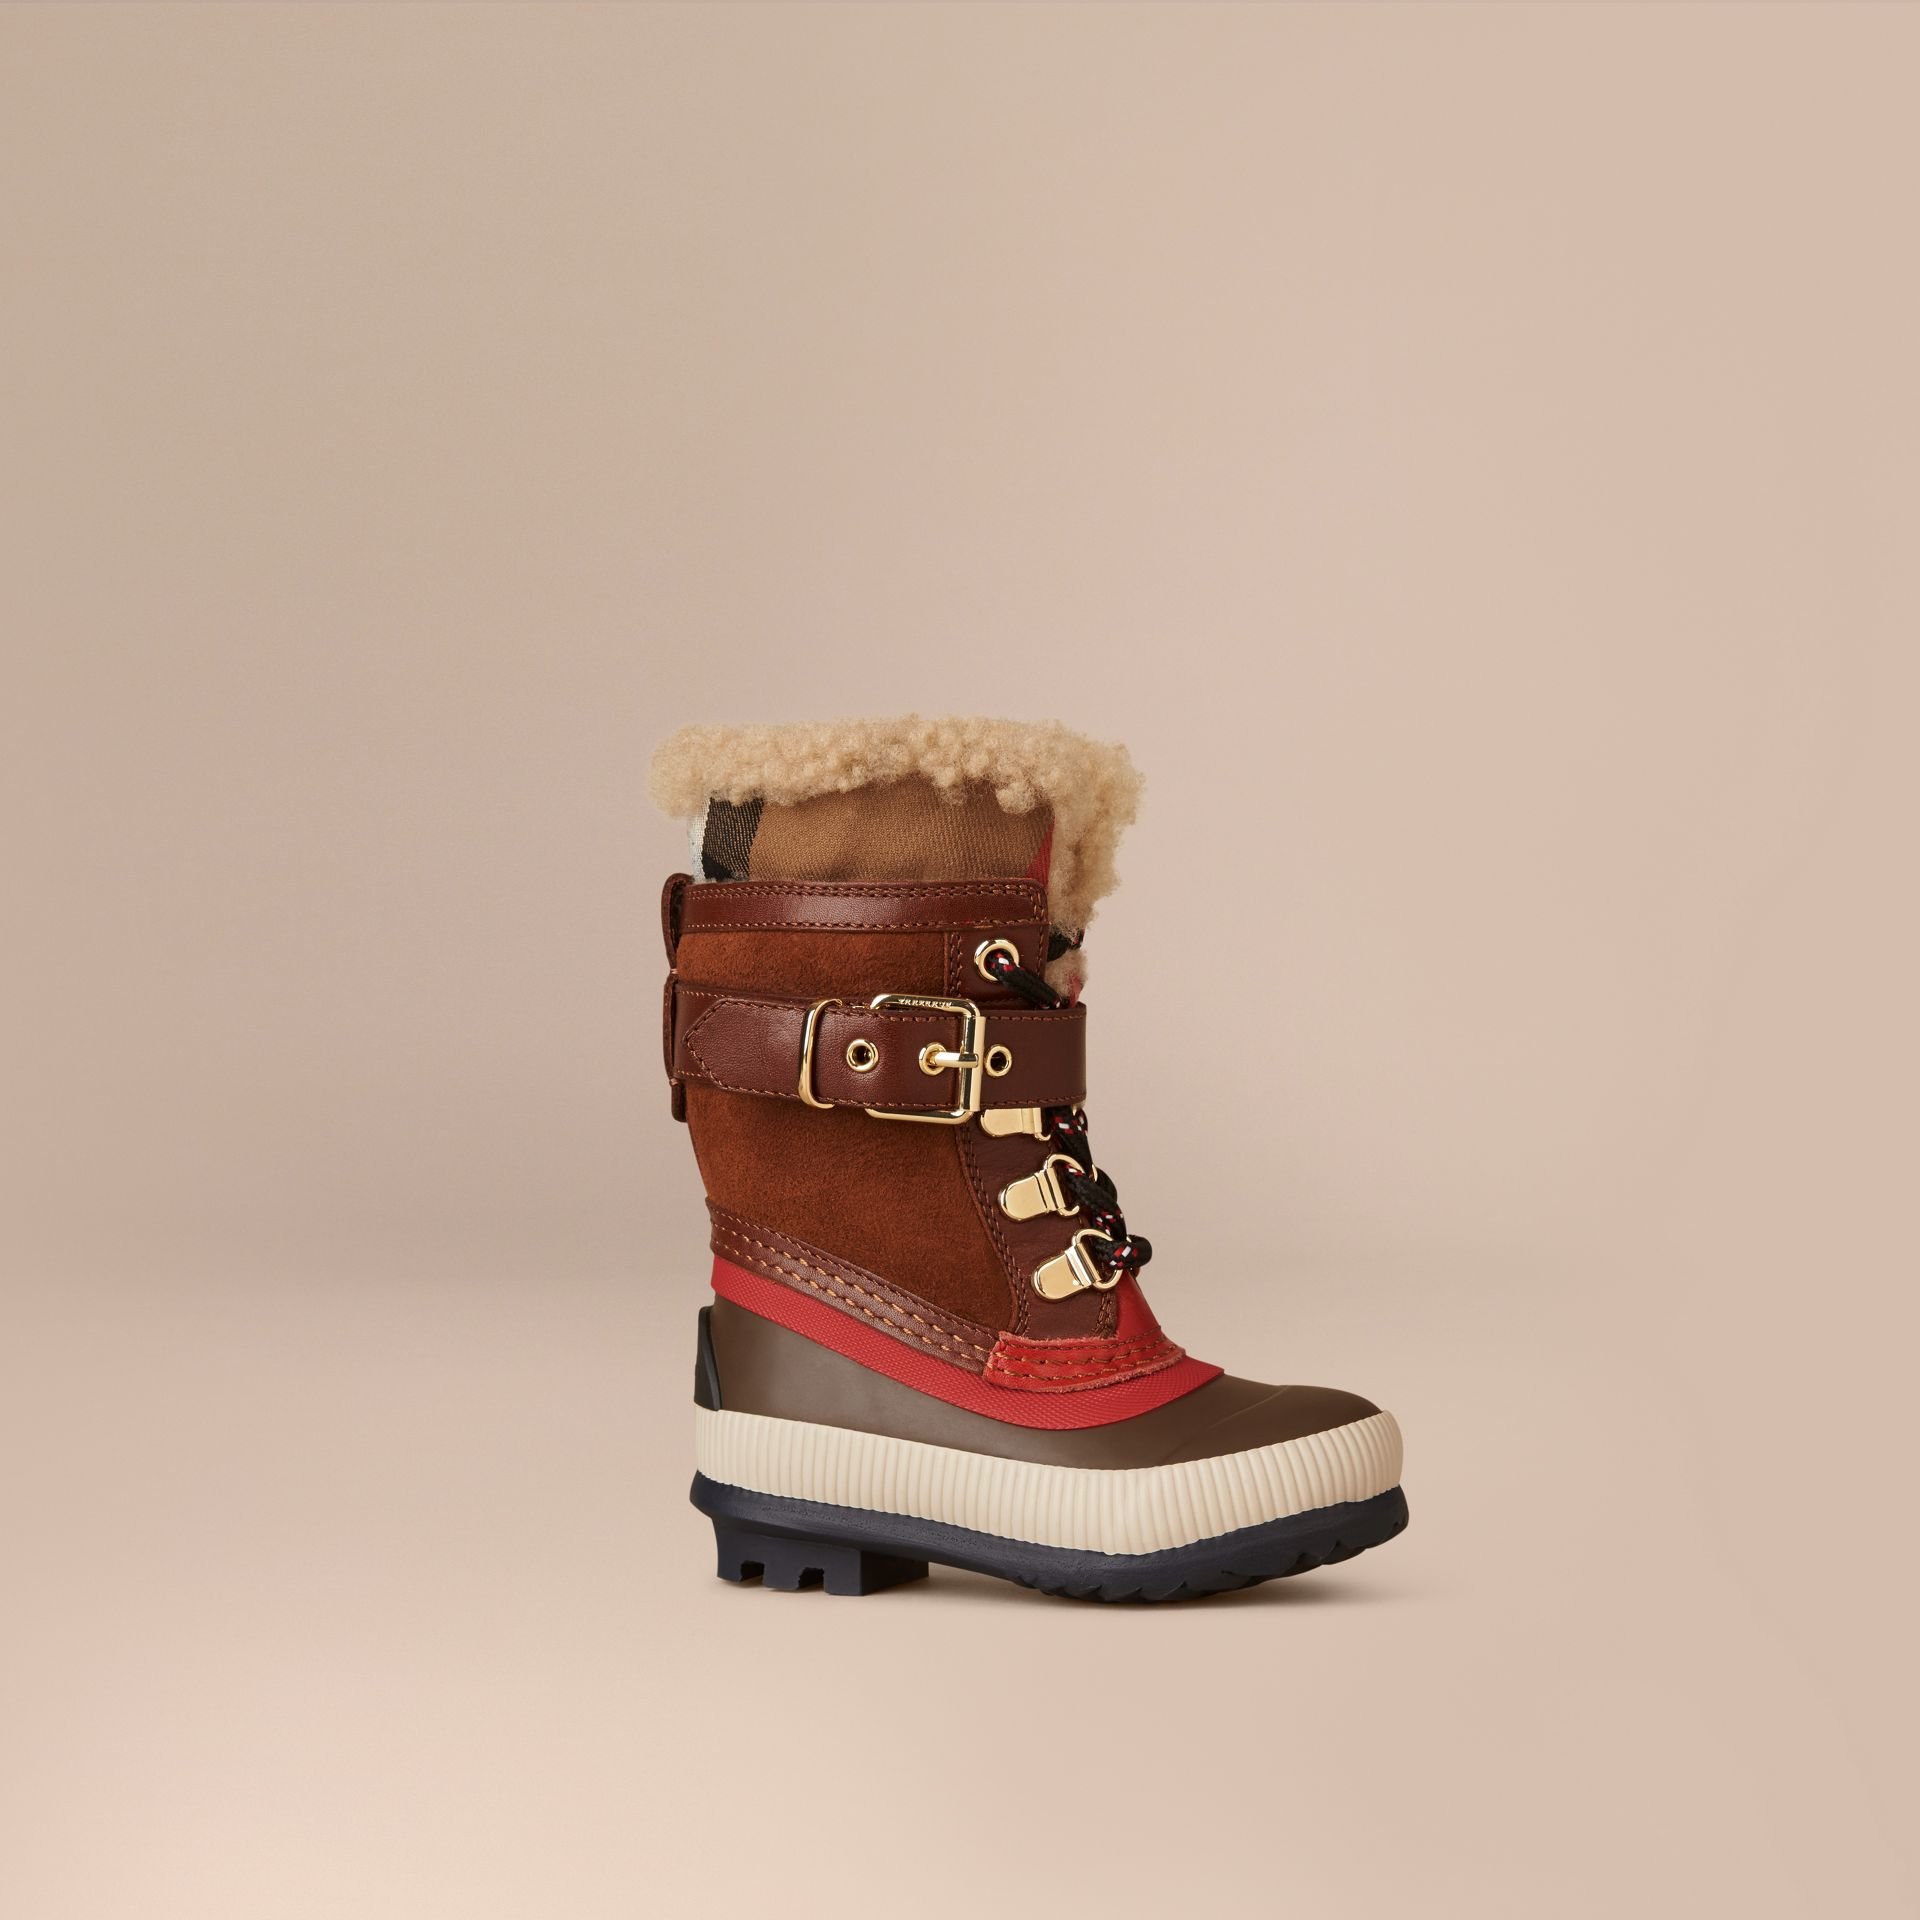 House check/khaki House Check and Suede Trim Shearling Boots - gallery image 1